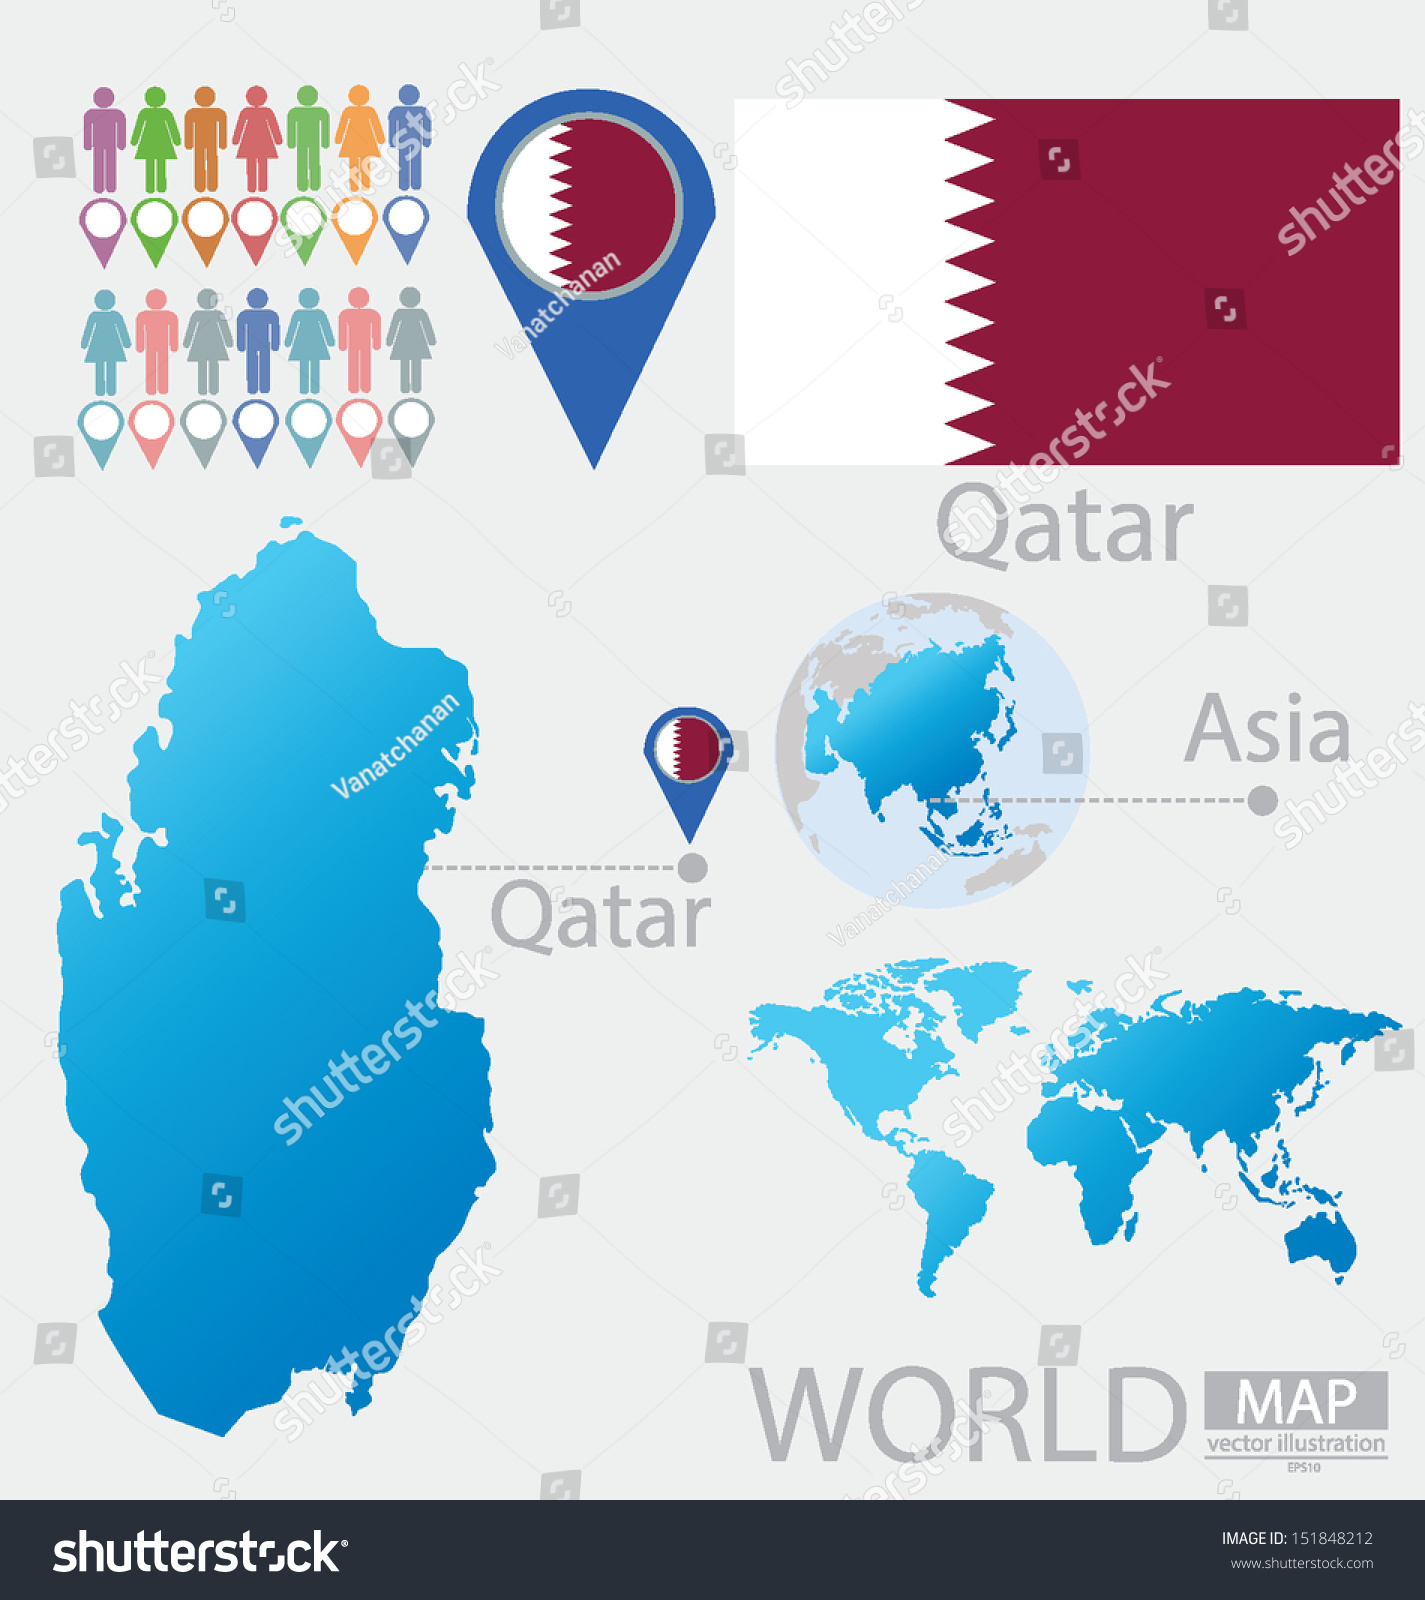 Qatar Flag Asia World Map Vector Stock Vector Royalty Free